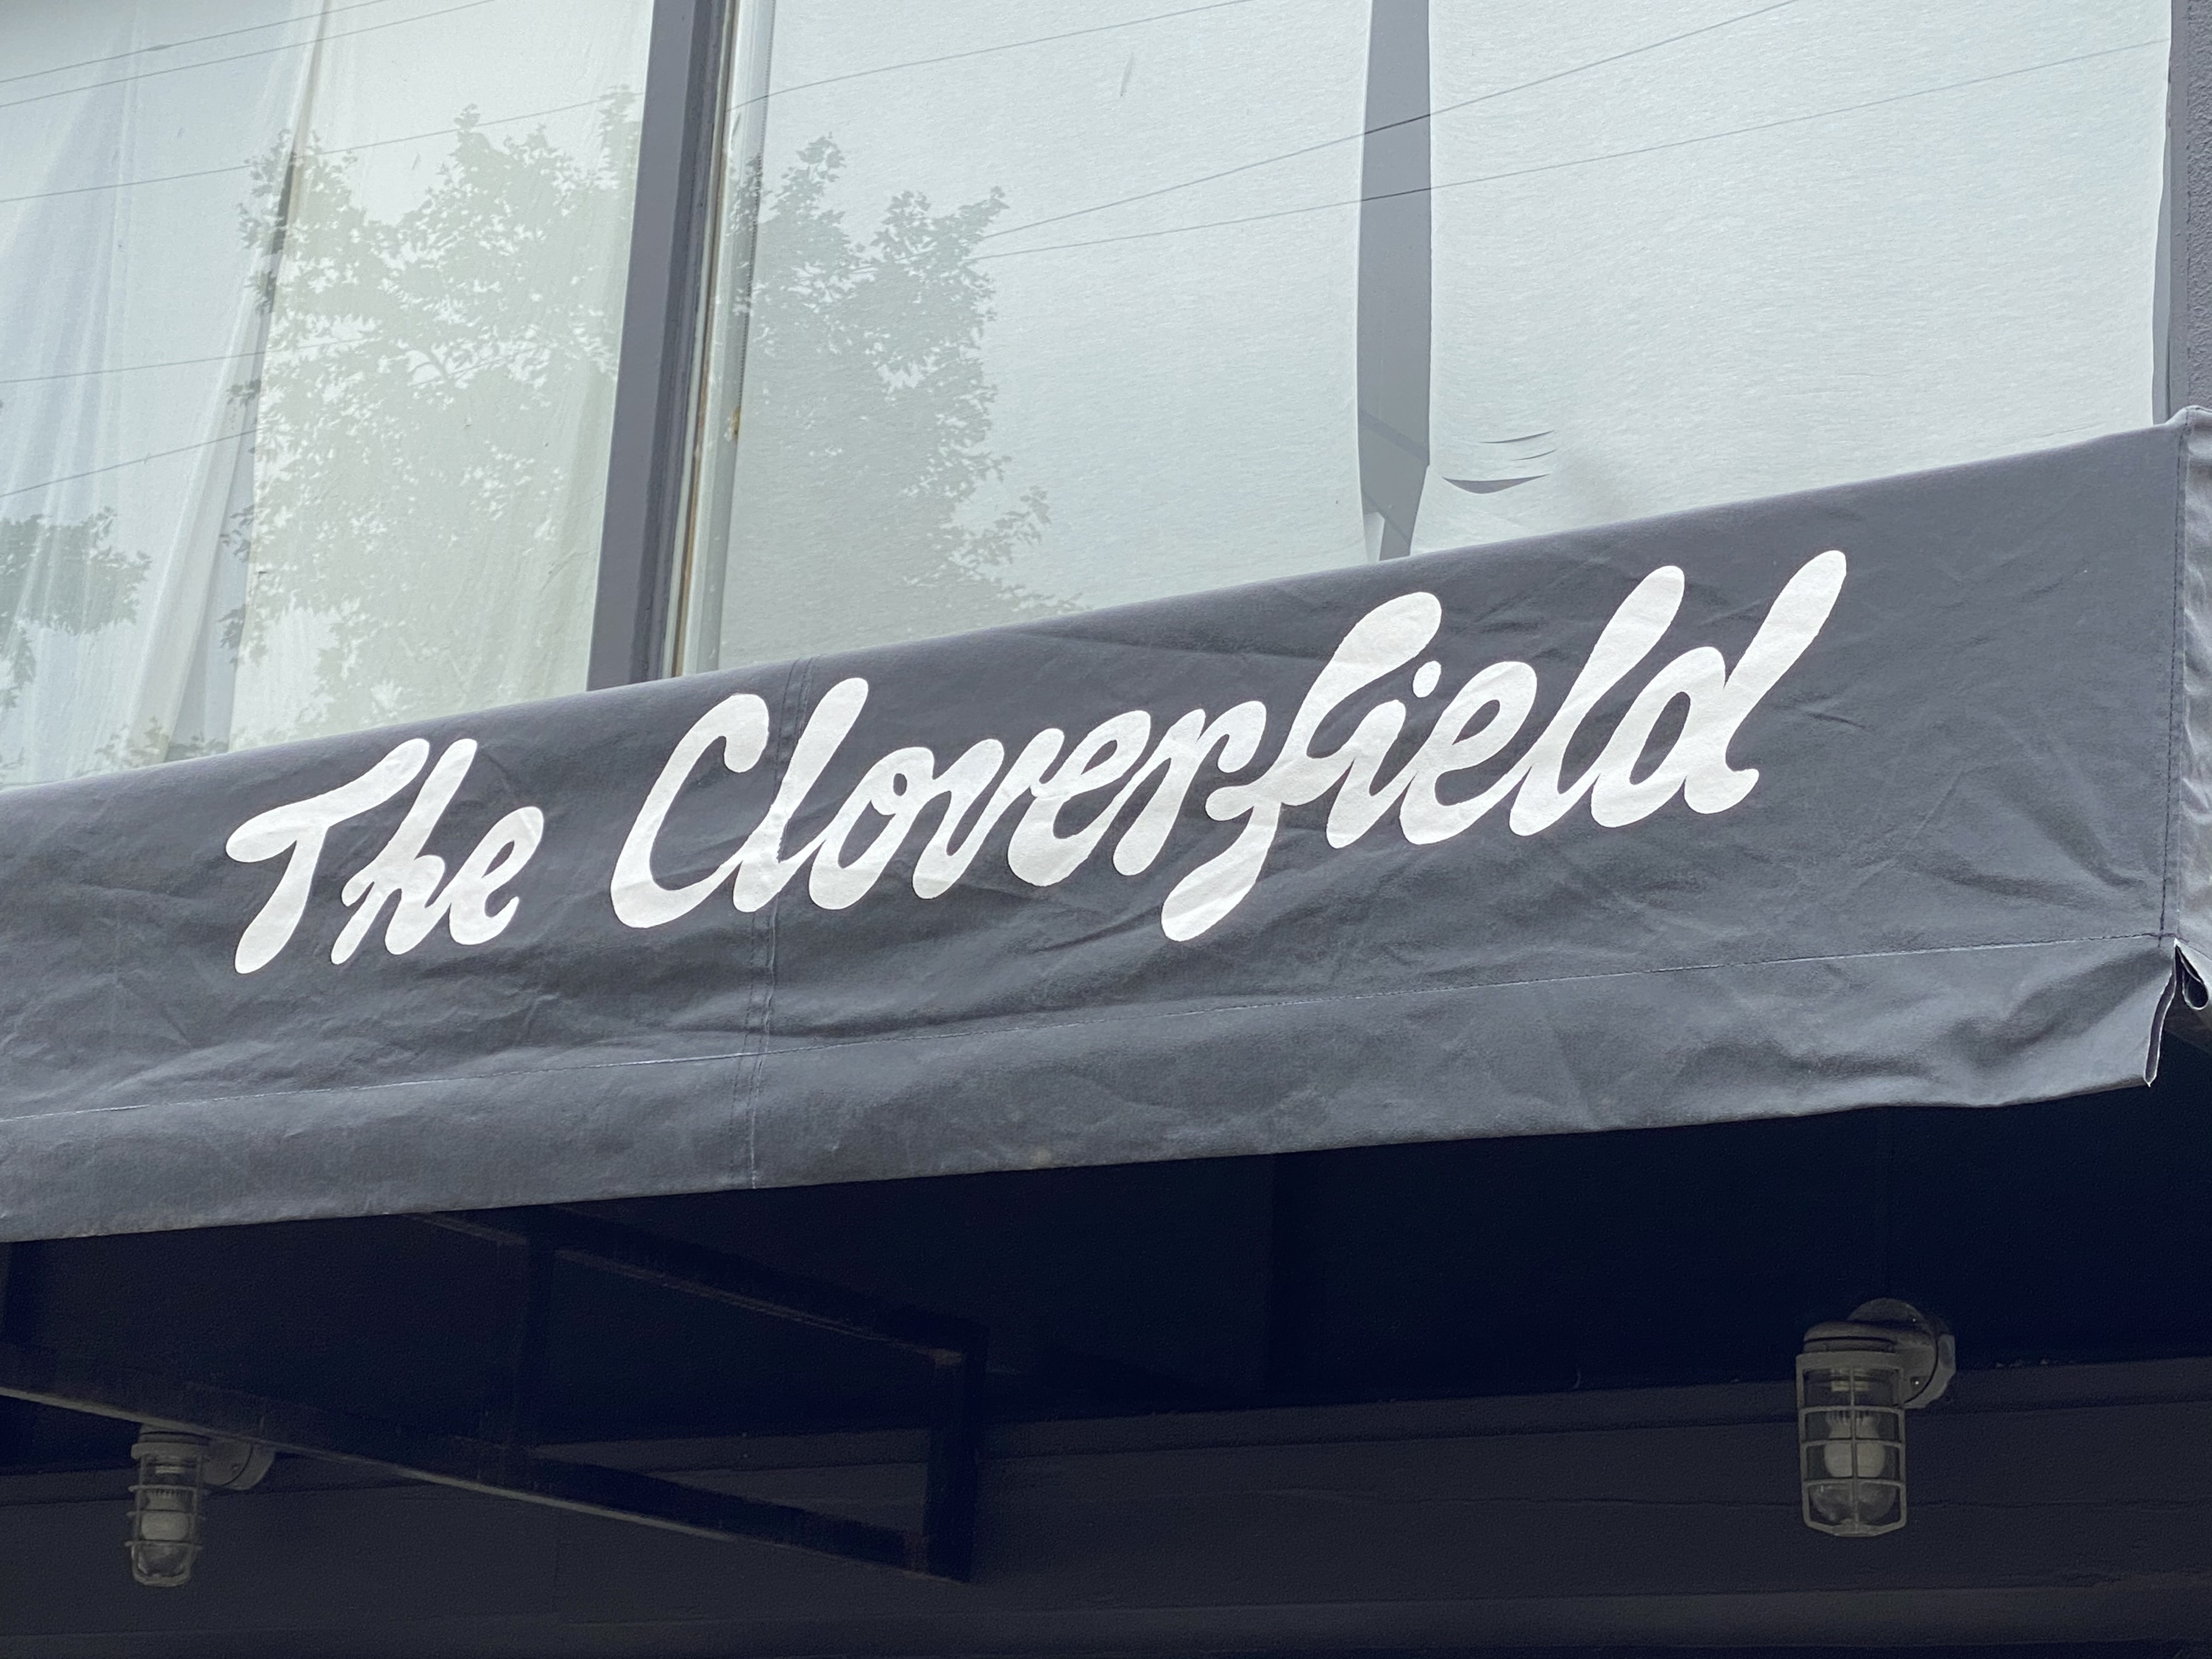 A black awning shows off language for a new restaurant called the Cloverfield.